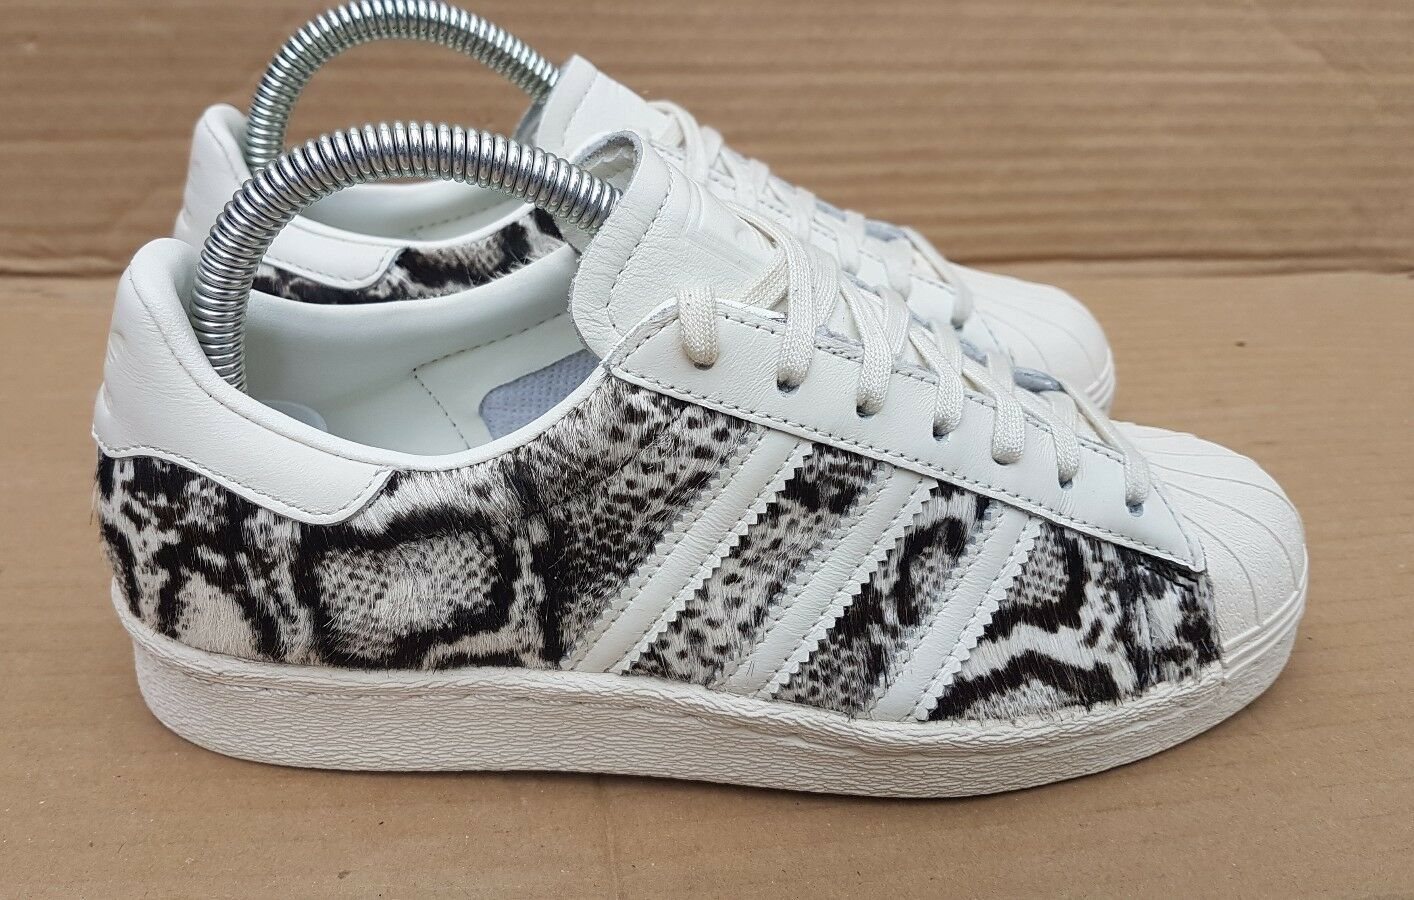 ADIDAS SUPERSTAR 80's PONY HAIR LEOPARD PRINT TRAINERS RARE SIZE 5 UK RARE TRAINERS STUNNING 4845f3